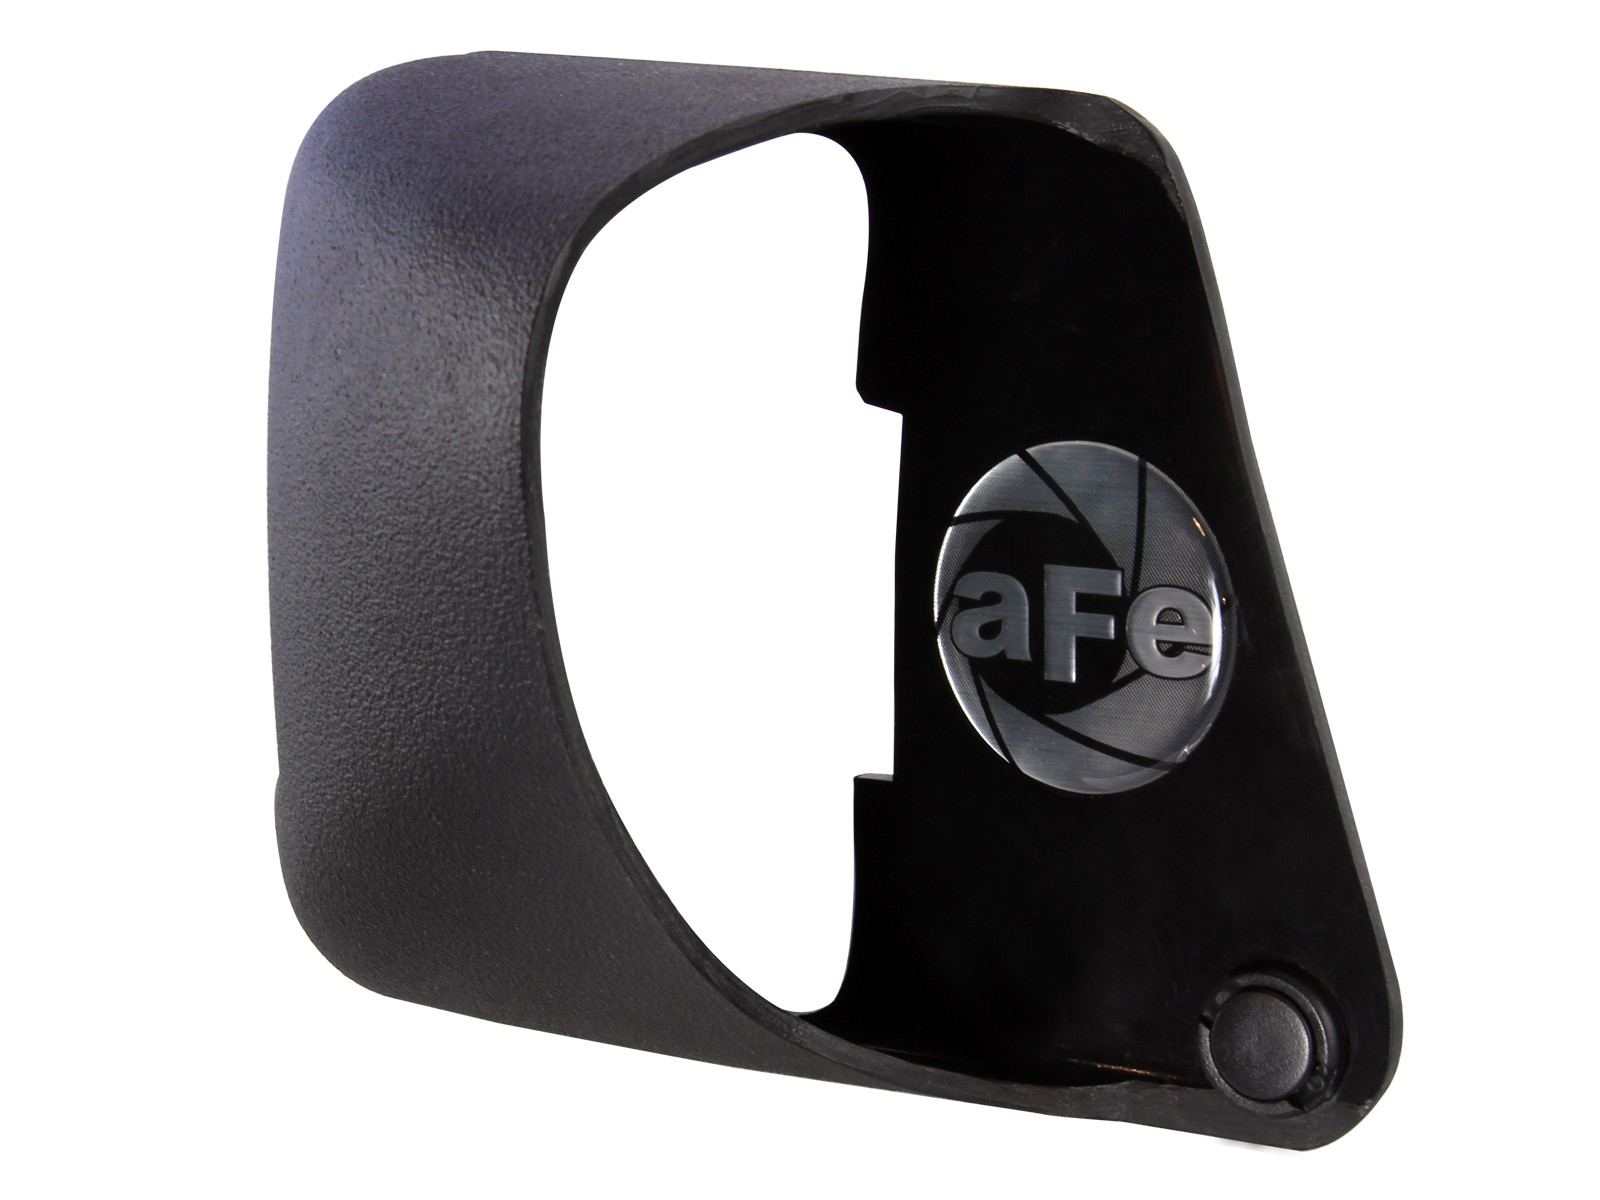 aFe Filters 54-12208 MagnumFORCE Intake System Scoop